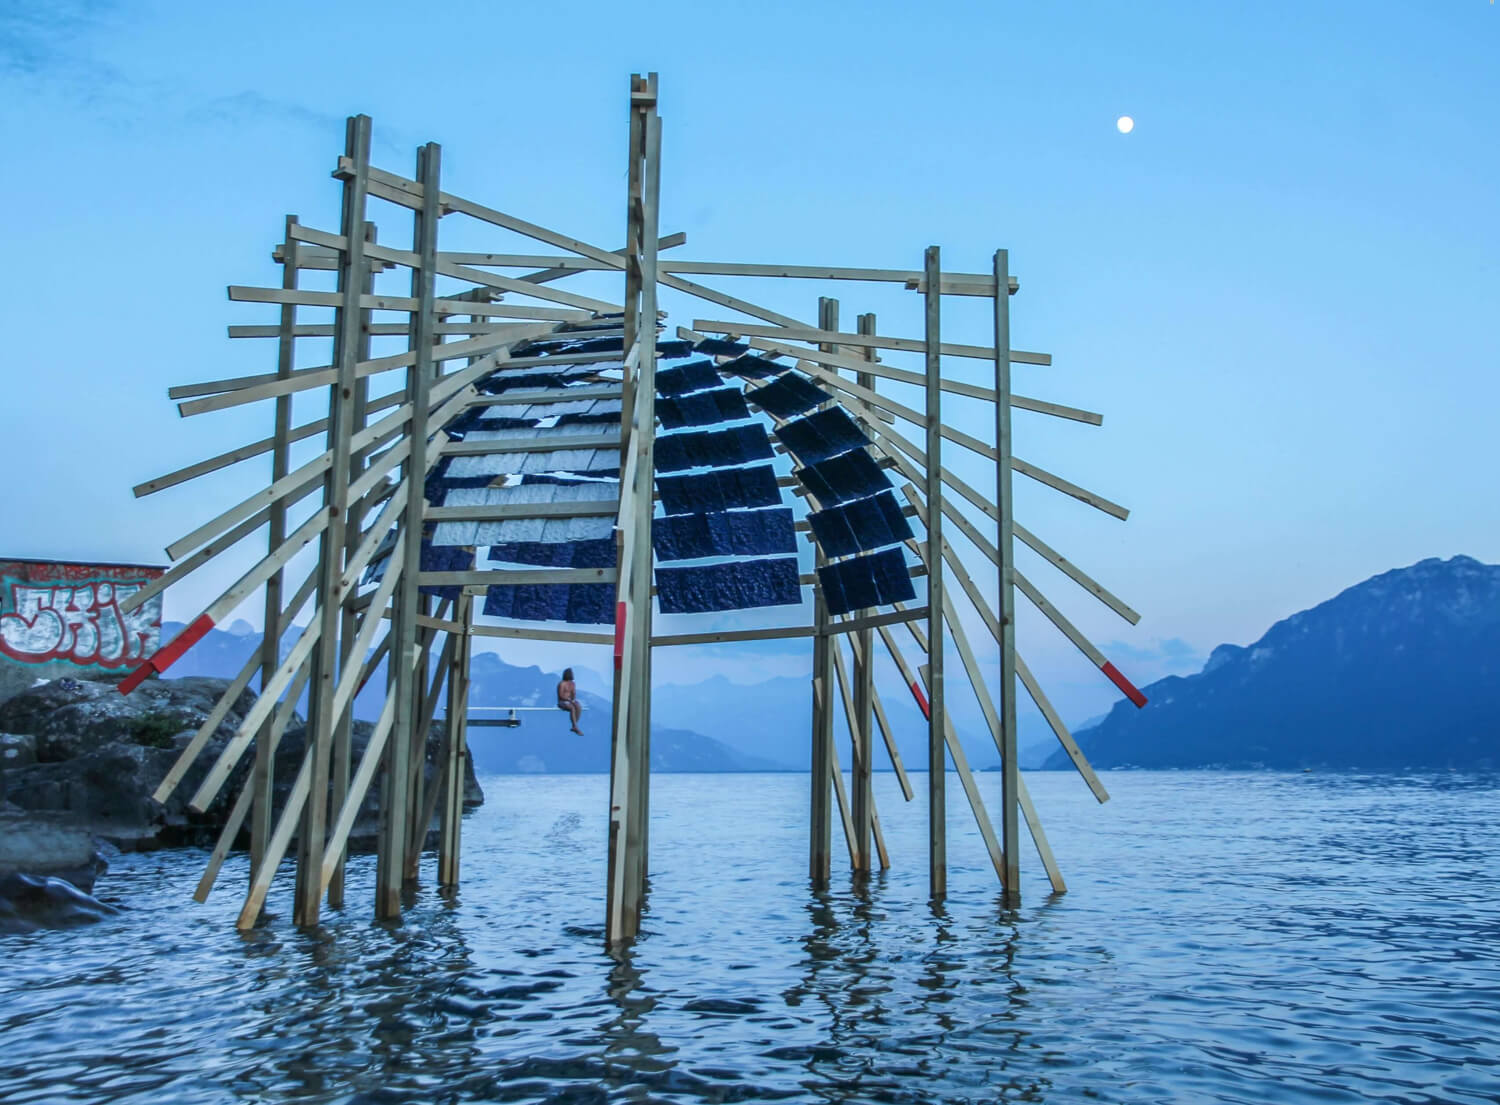 the architecture installation is a pavilion which is constructed in the water